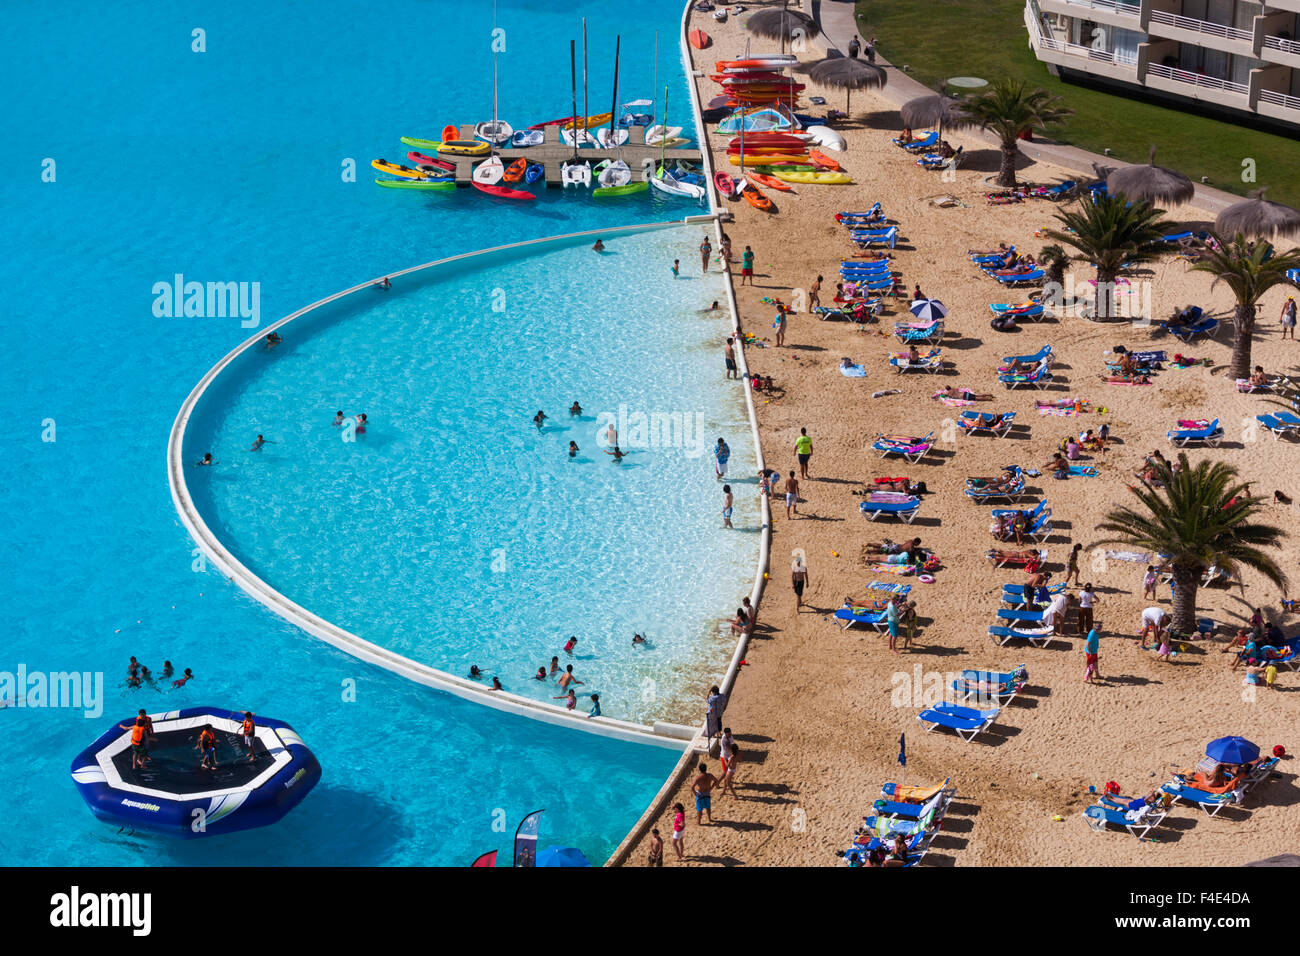 Largest Pool In Chile >> Chile Algarrobo San Alfonso Del Mar Resort Has The World S